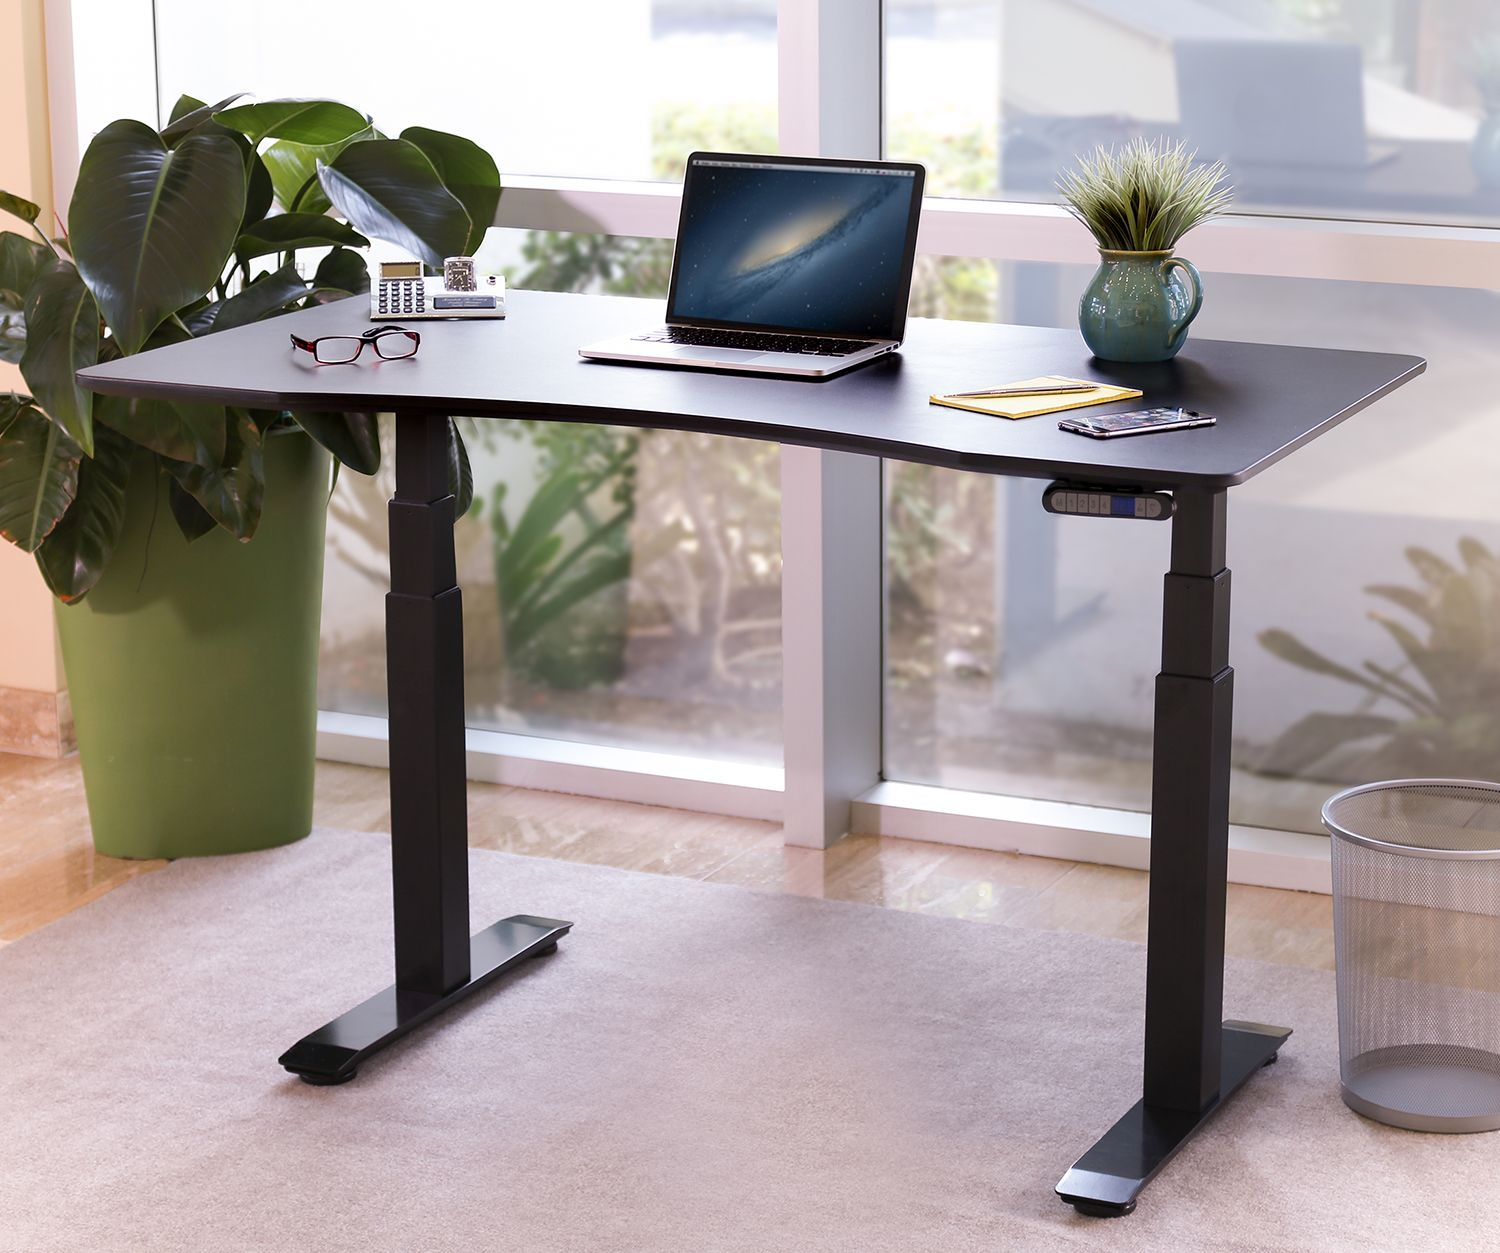 Airlift xl sitstand mobile desk white pinterest desks